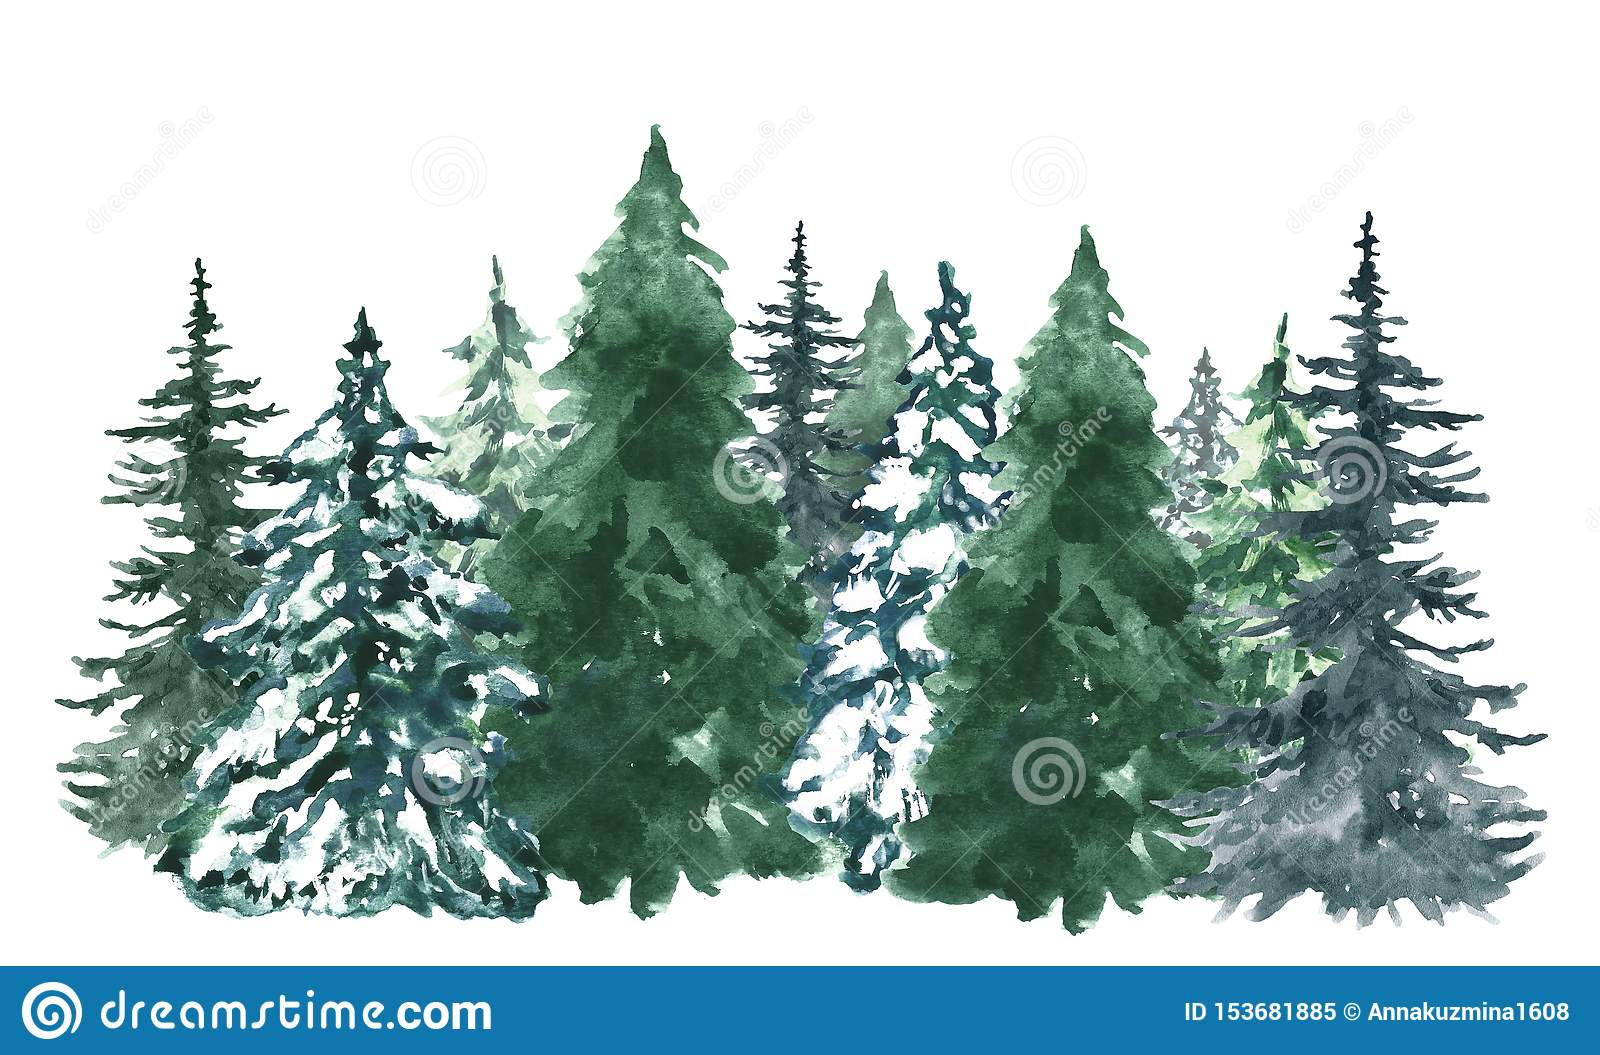 watercolor pine trees background banner hand painted pine forest isolated snow winter wonderland illustration watercolor 153681885